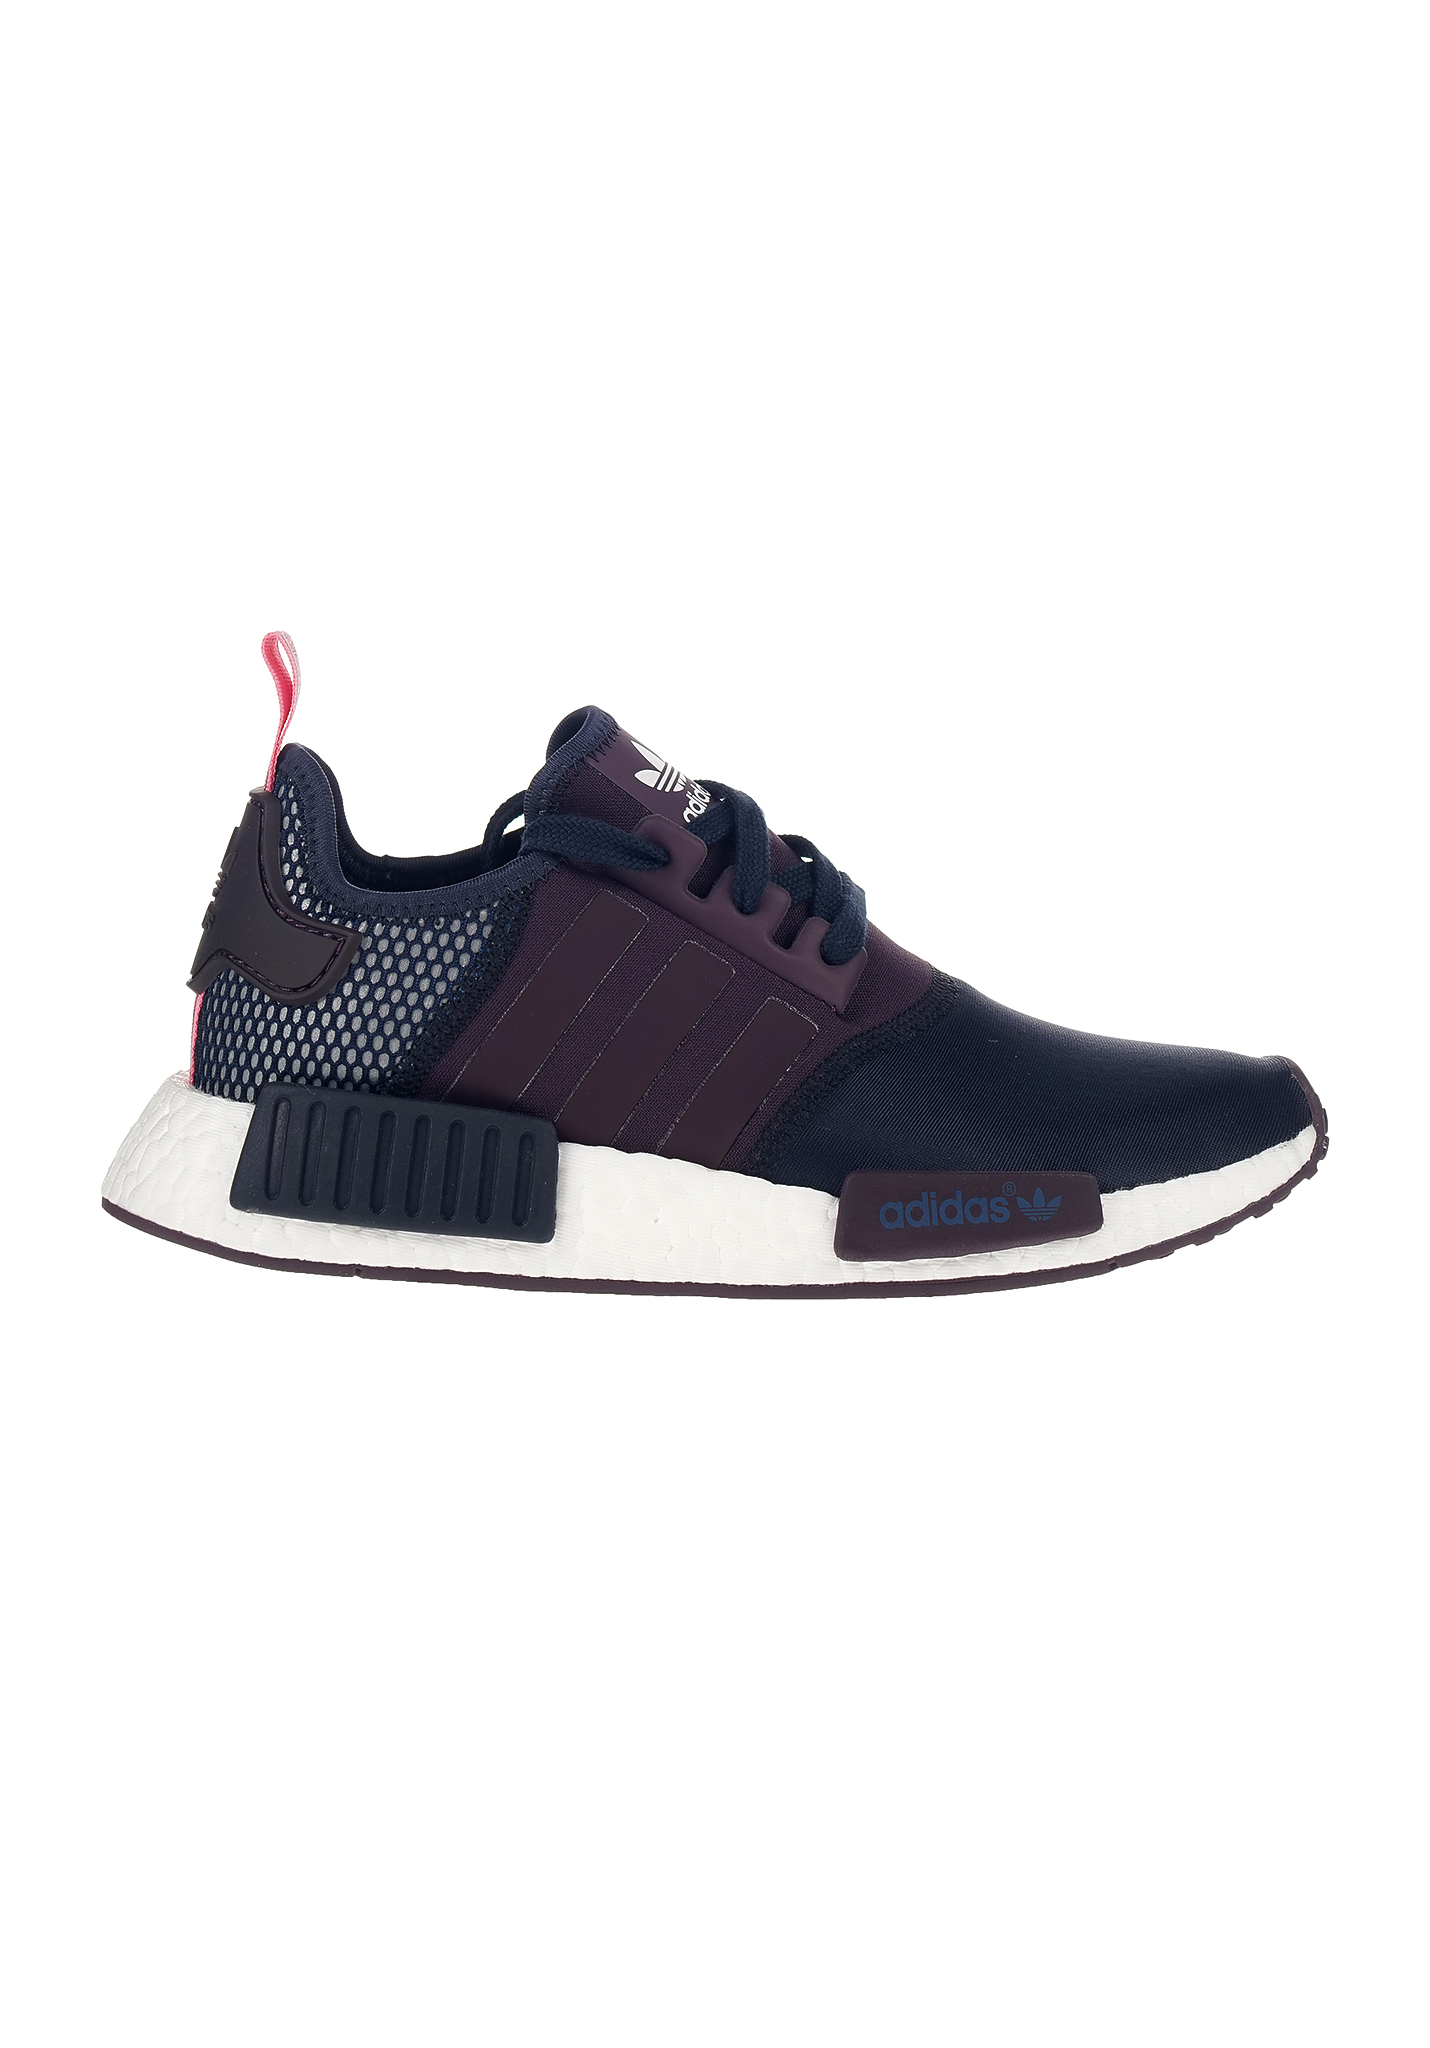 neu adidas nmd r1 damen sneaker turnschuhe freizeit schuhe. Black Bedroom Furniture Sets. Home Design Ideas